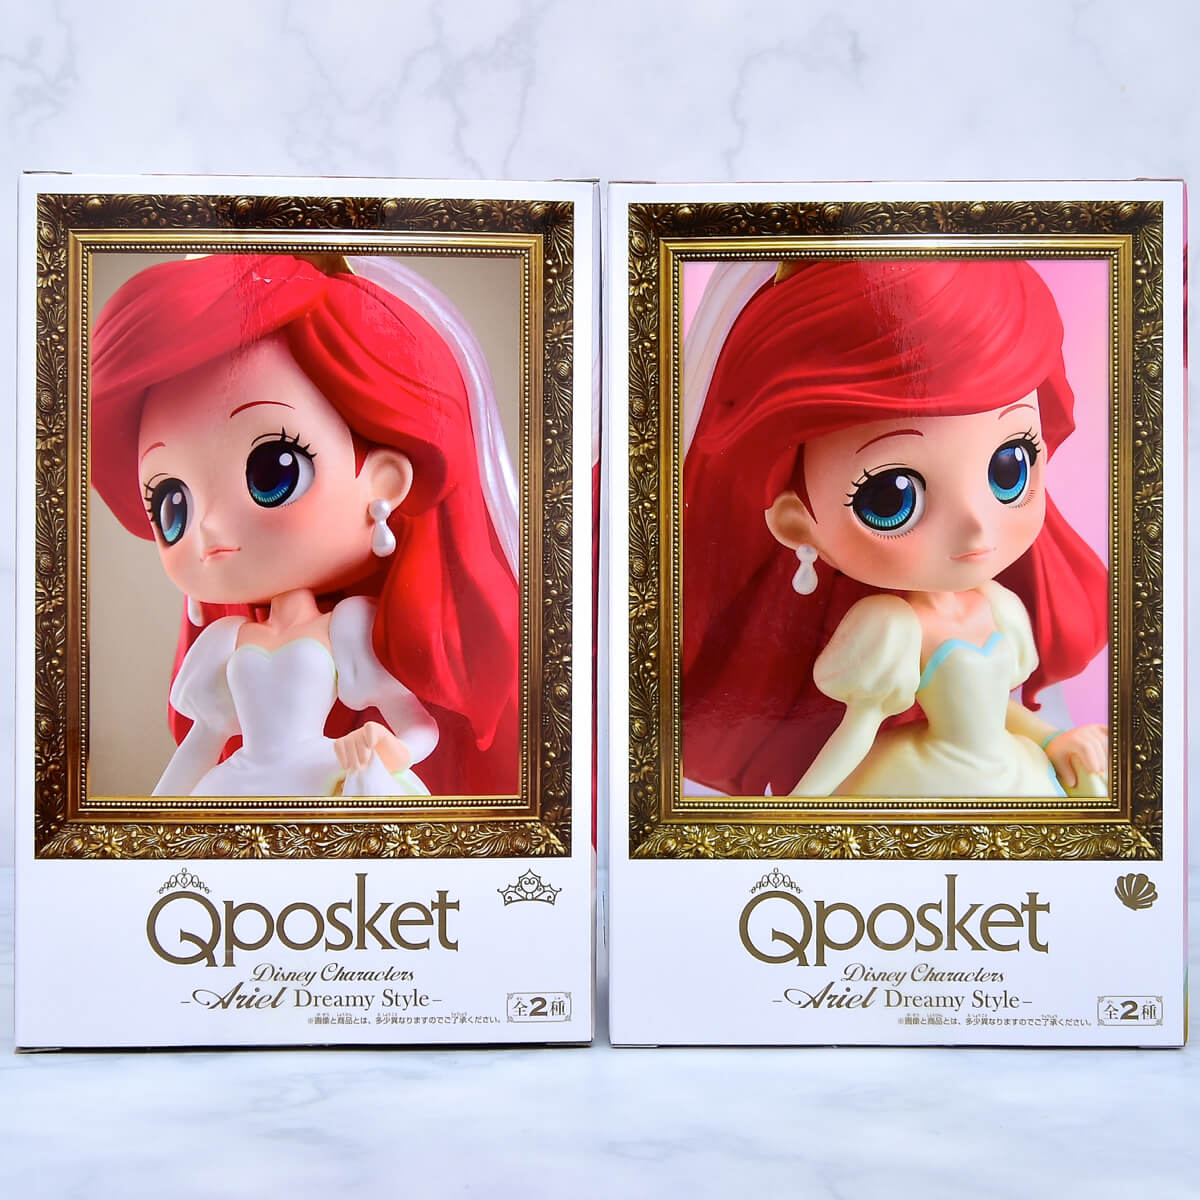 Q posket Disney Characters-Ariel Dreamy Style-パッケージ裏